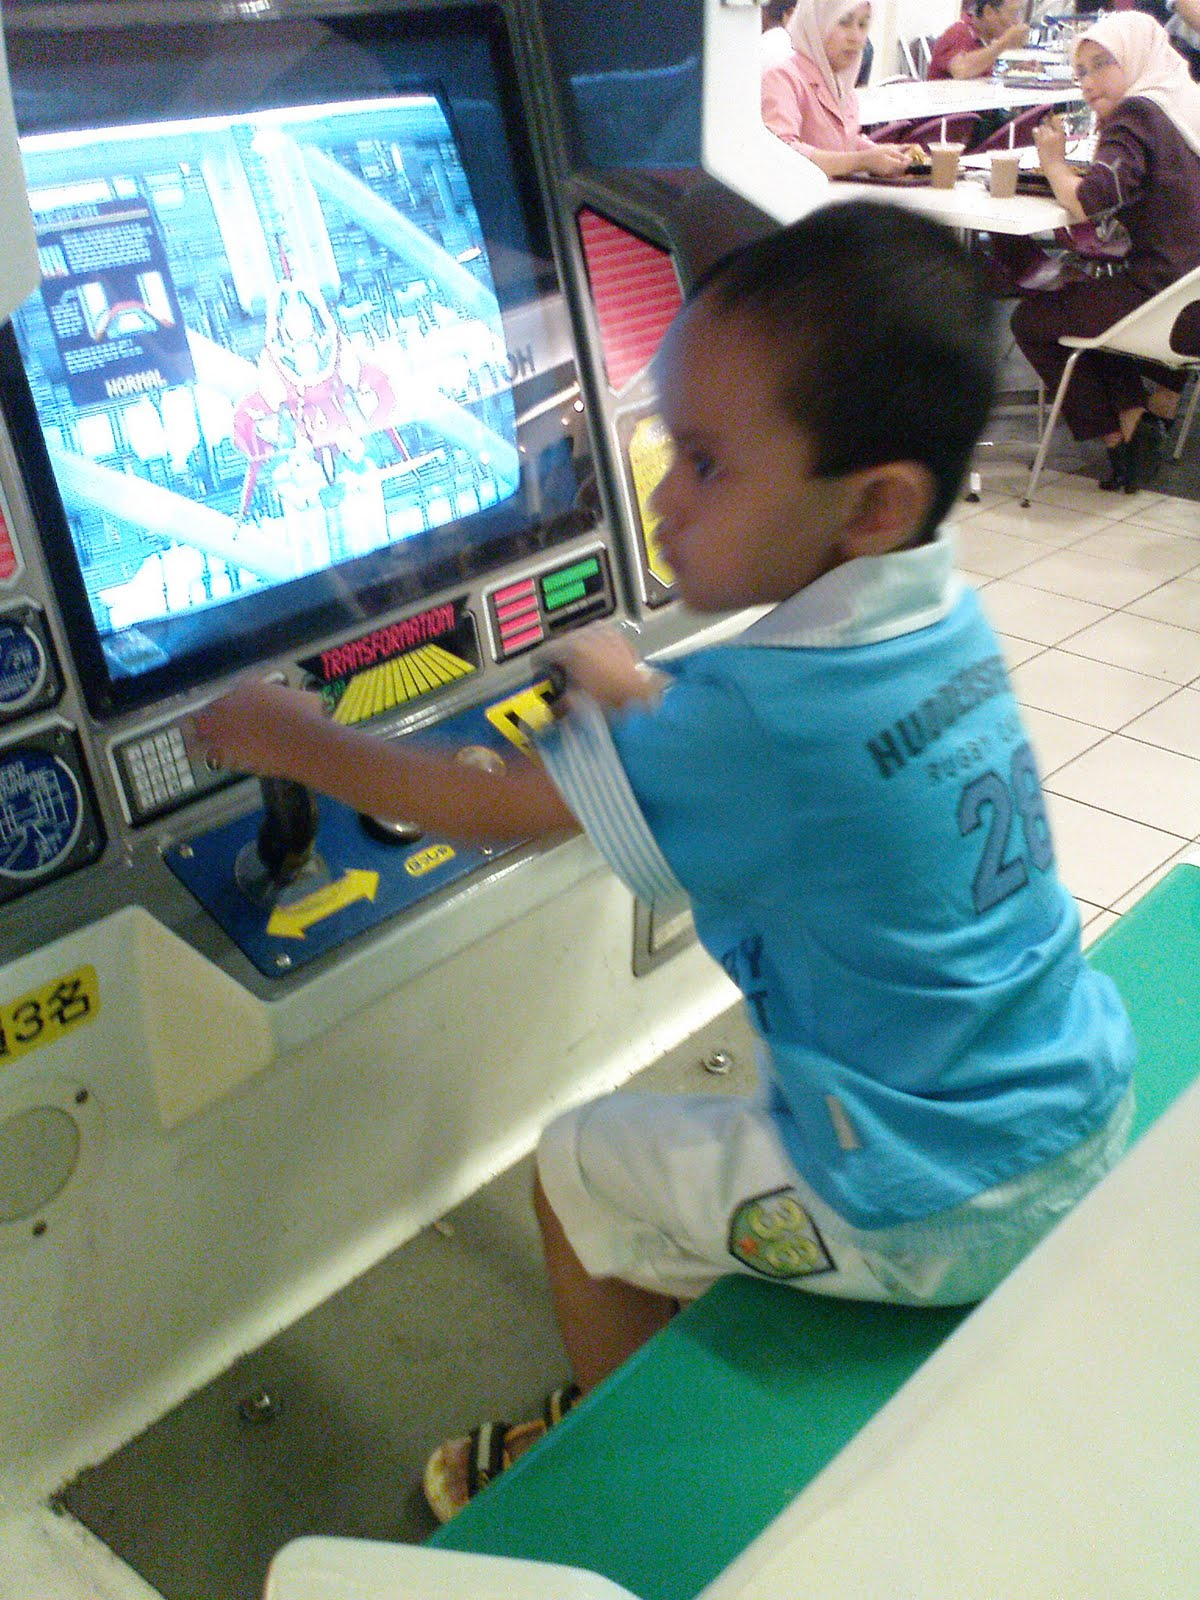 AzFaR MaIn GamE